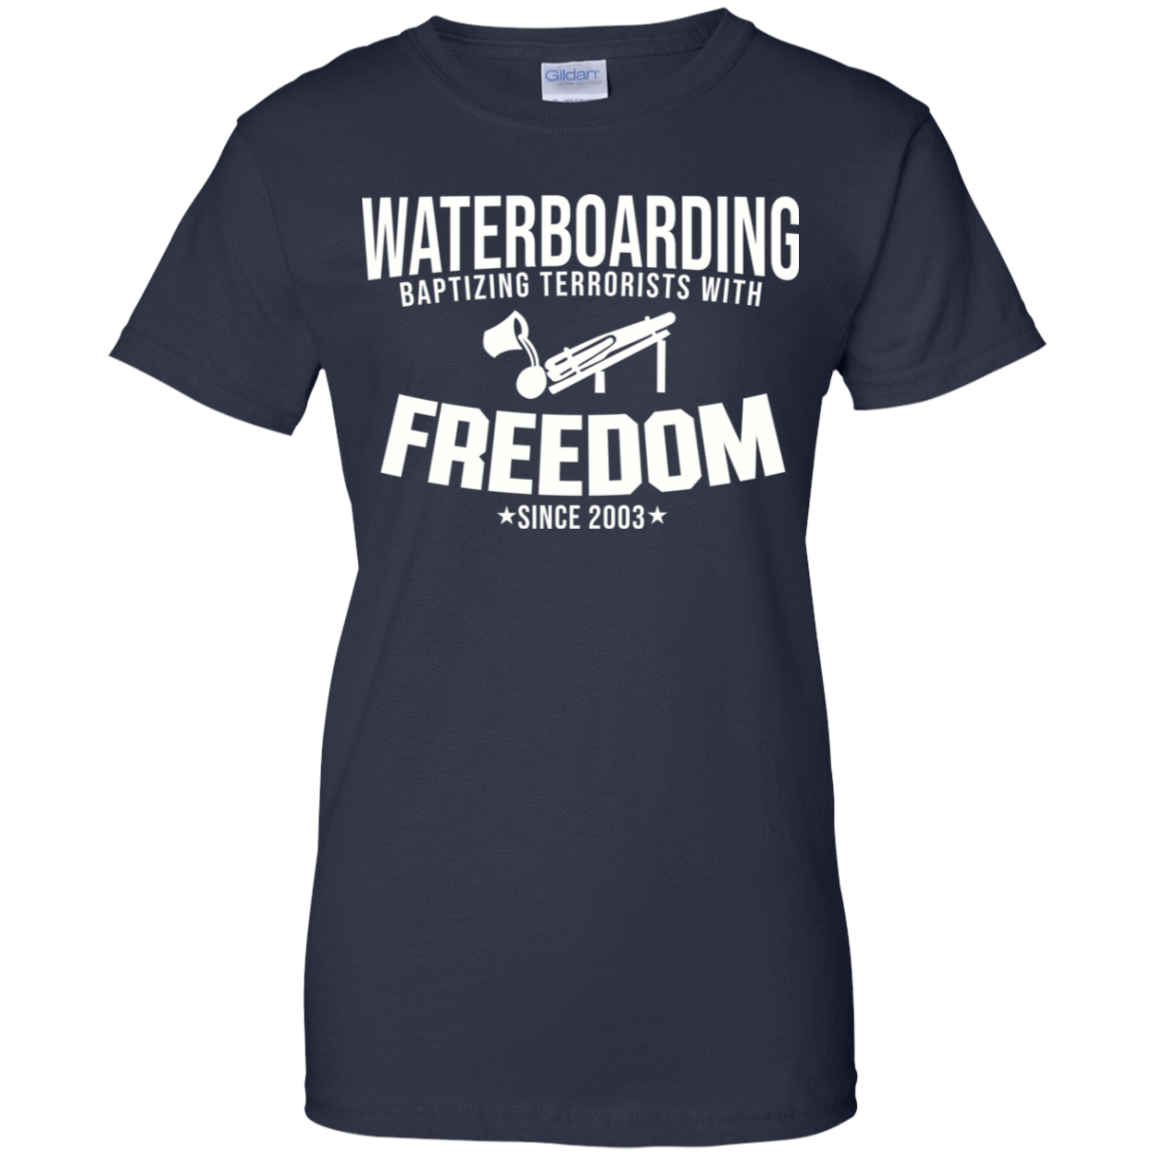 Waterboarding Baptising Terrorists With Freedom 939-9259-74046431-44765 - Tee Ript